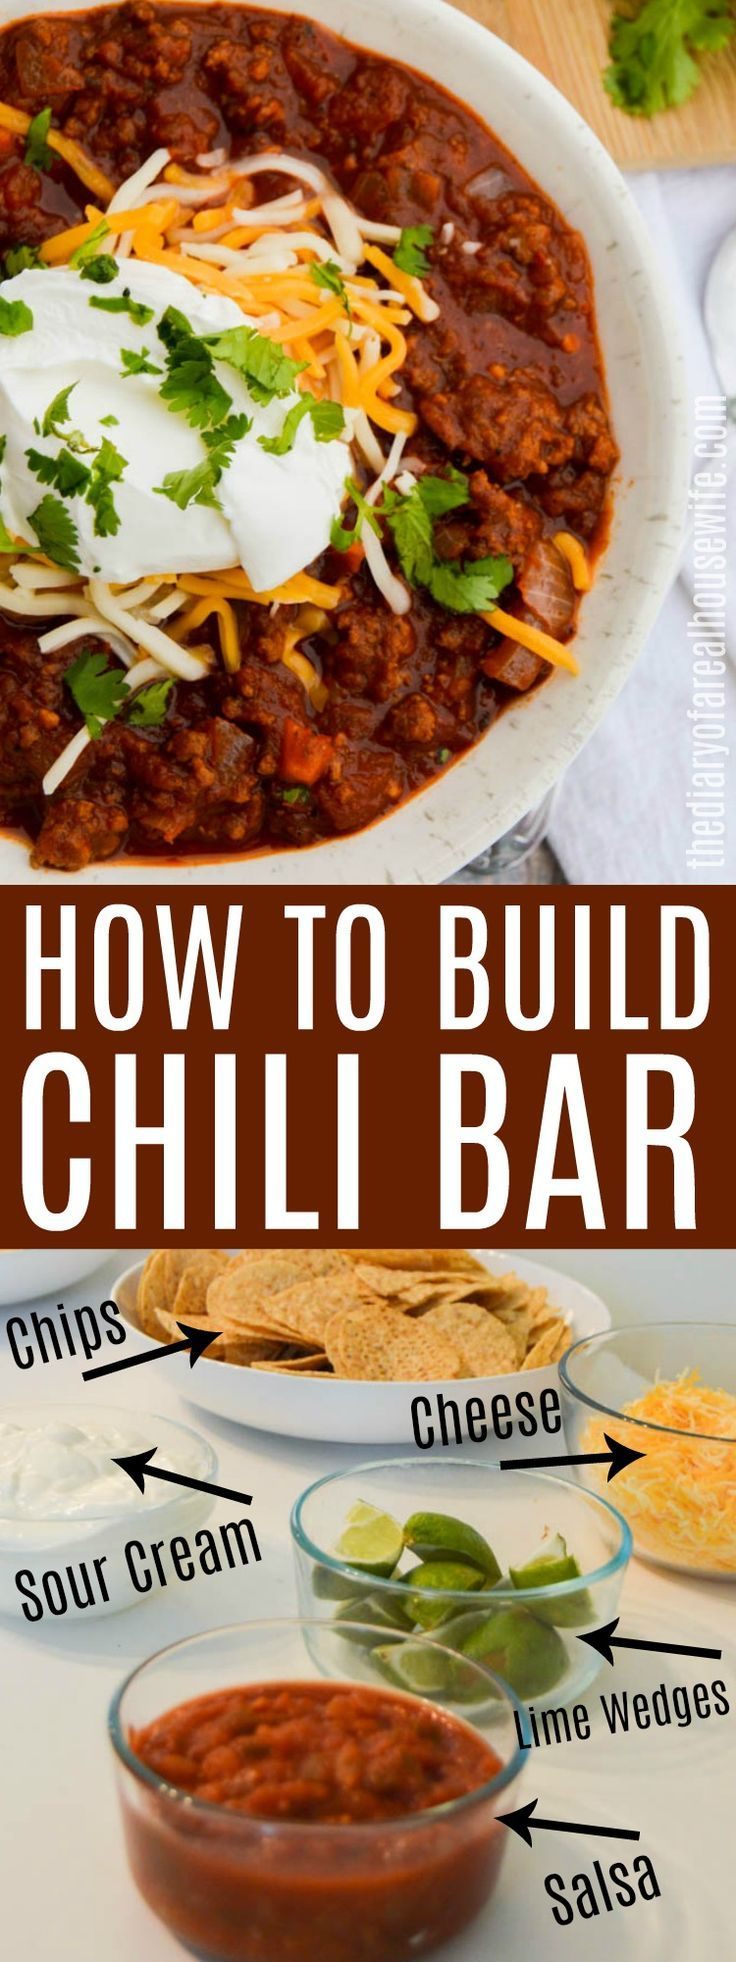 Chili Bar - The Diary of a Real Housewife